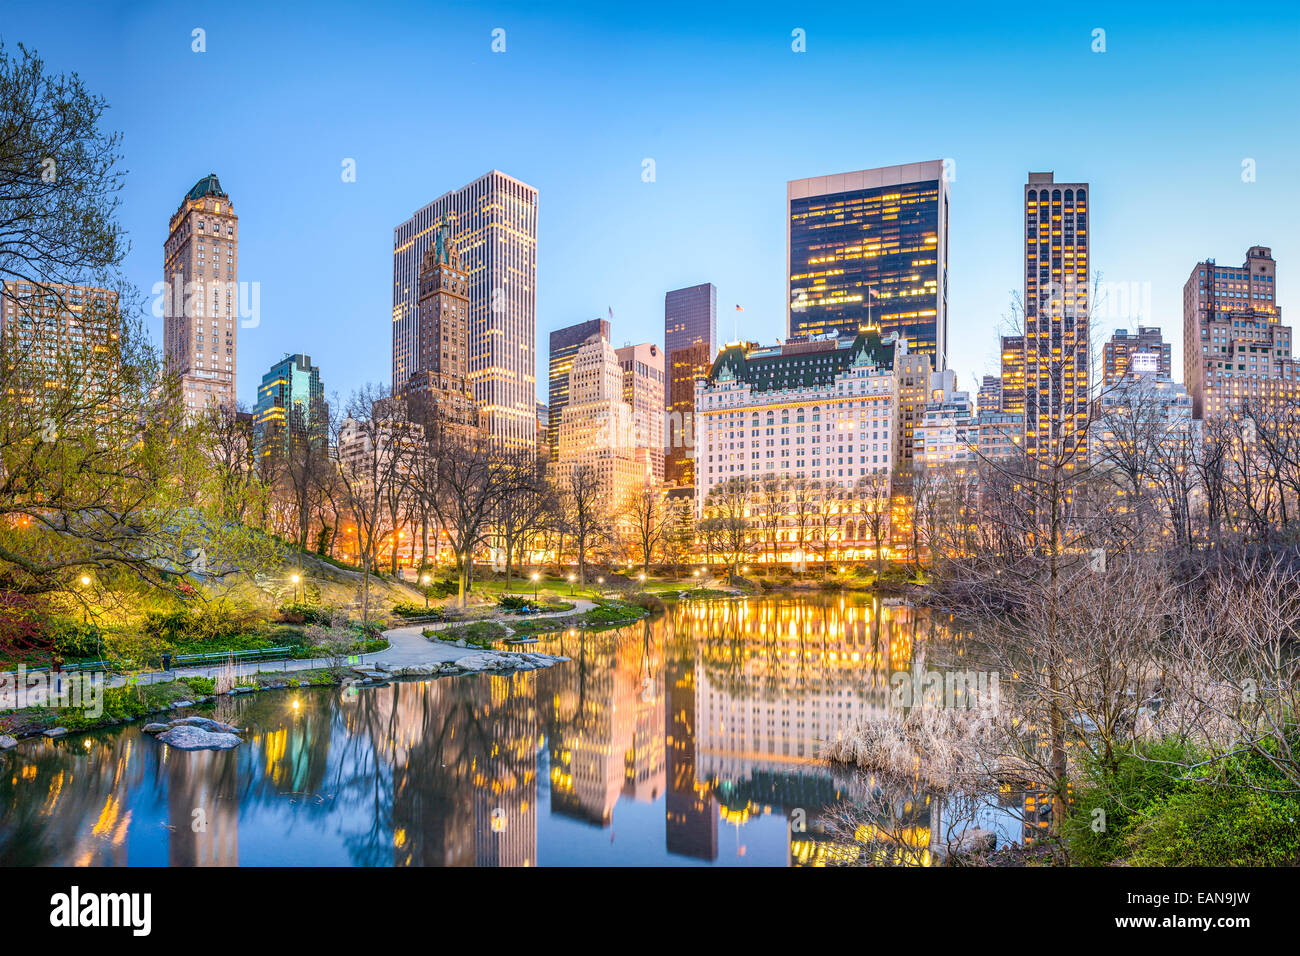 New York City, USA Manhattan cityscape from the Lagoon in Central Park. Stock Photo